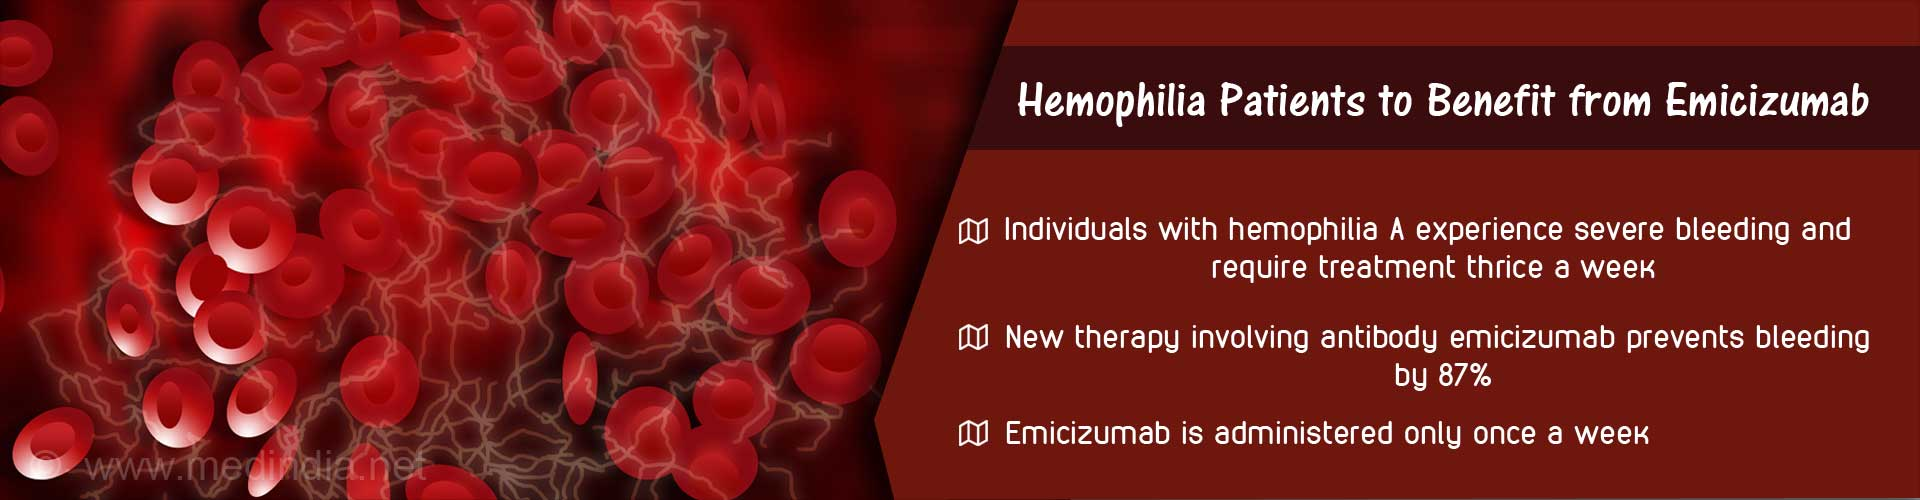 Hemophilia A Patients With Inhibitors Benefit from Emicizumab